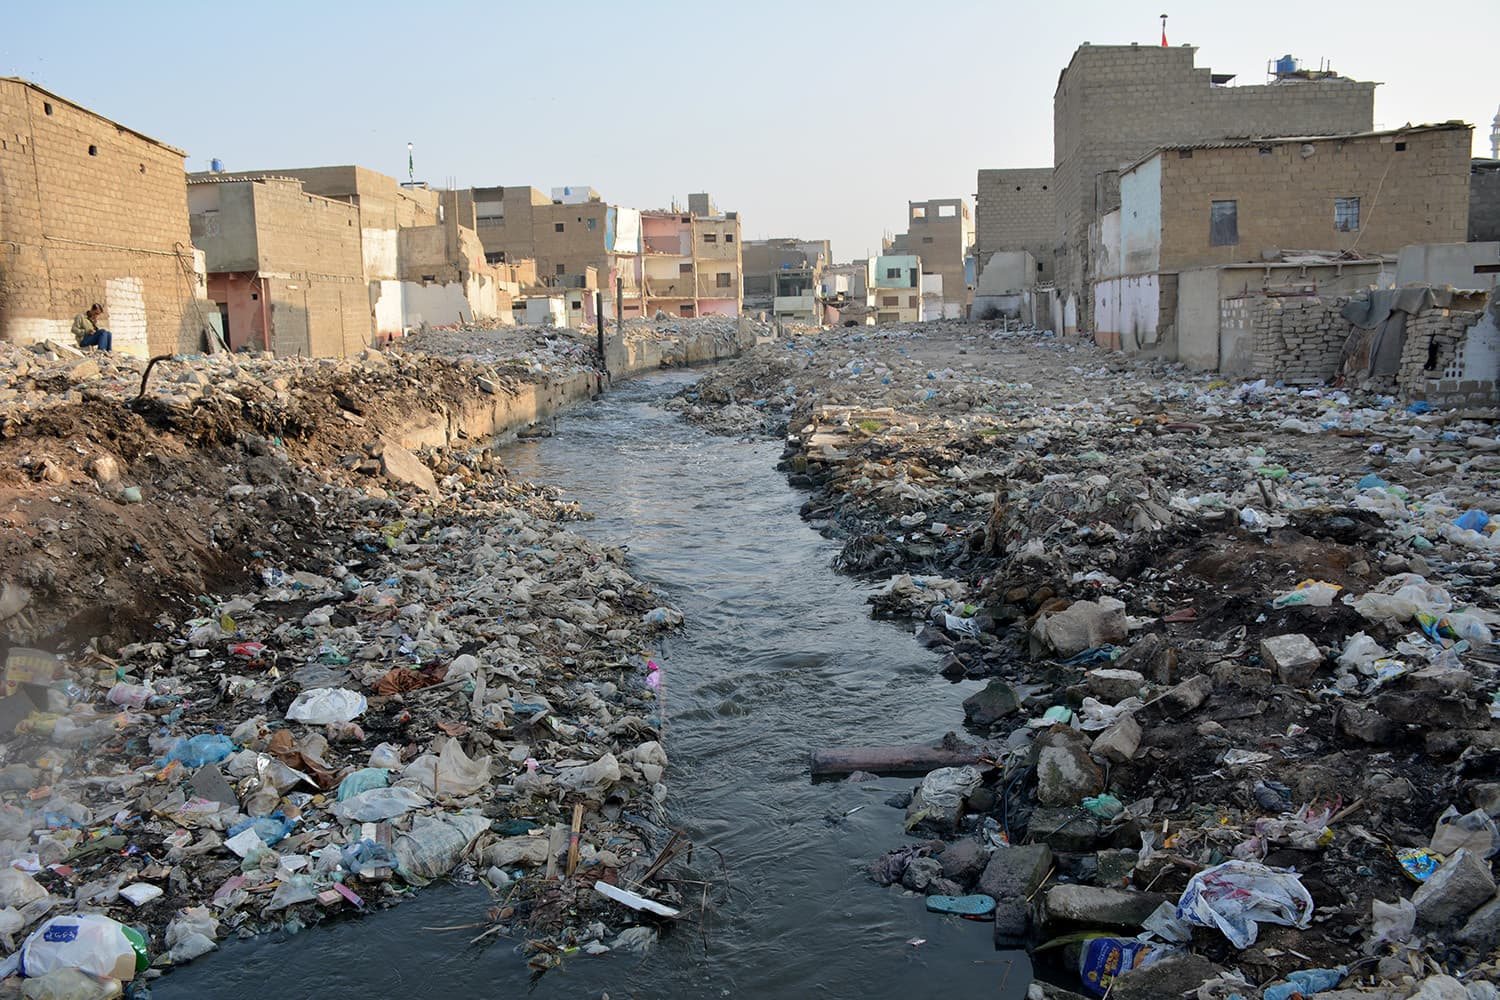 Encroachments on natural waterways, dumping of solid waste into stormwater drains are the two main reasons behind urban flooding. – All photos by Amar Guriro